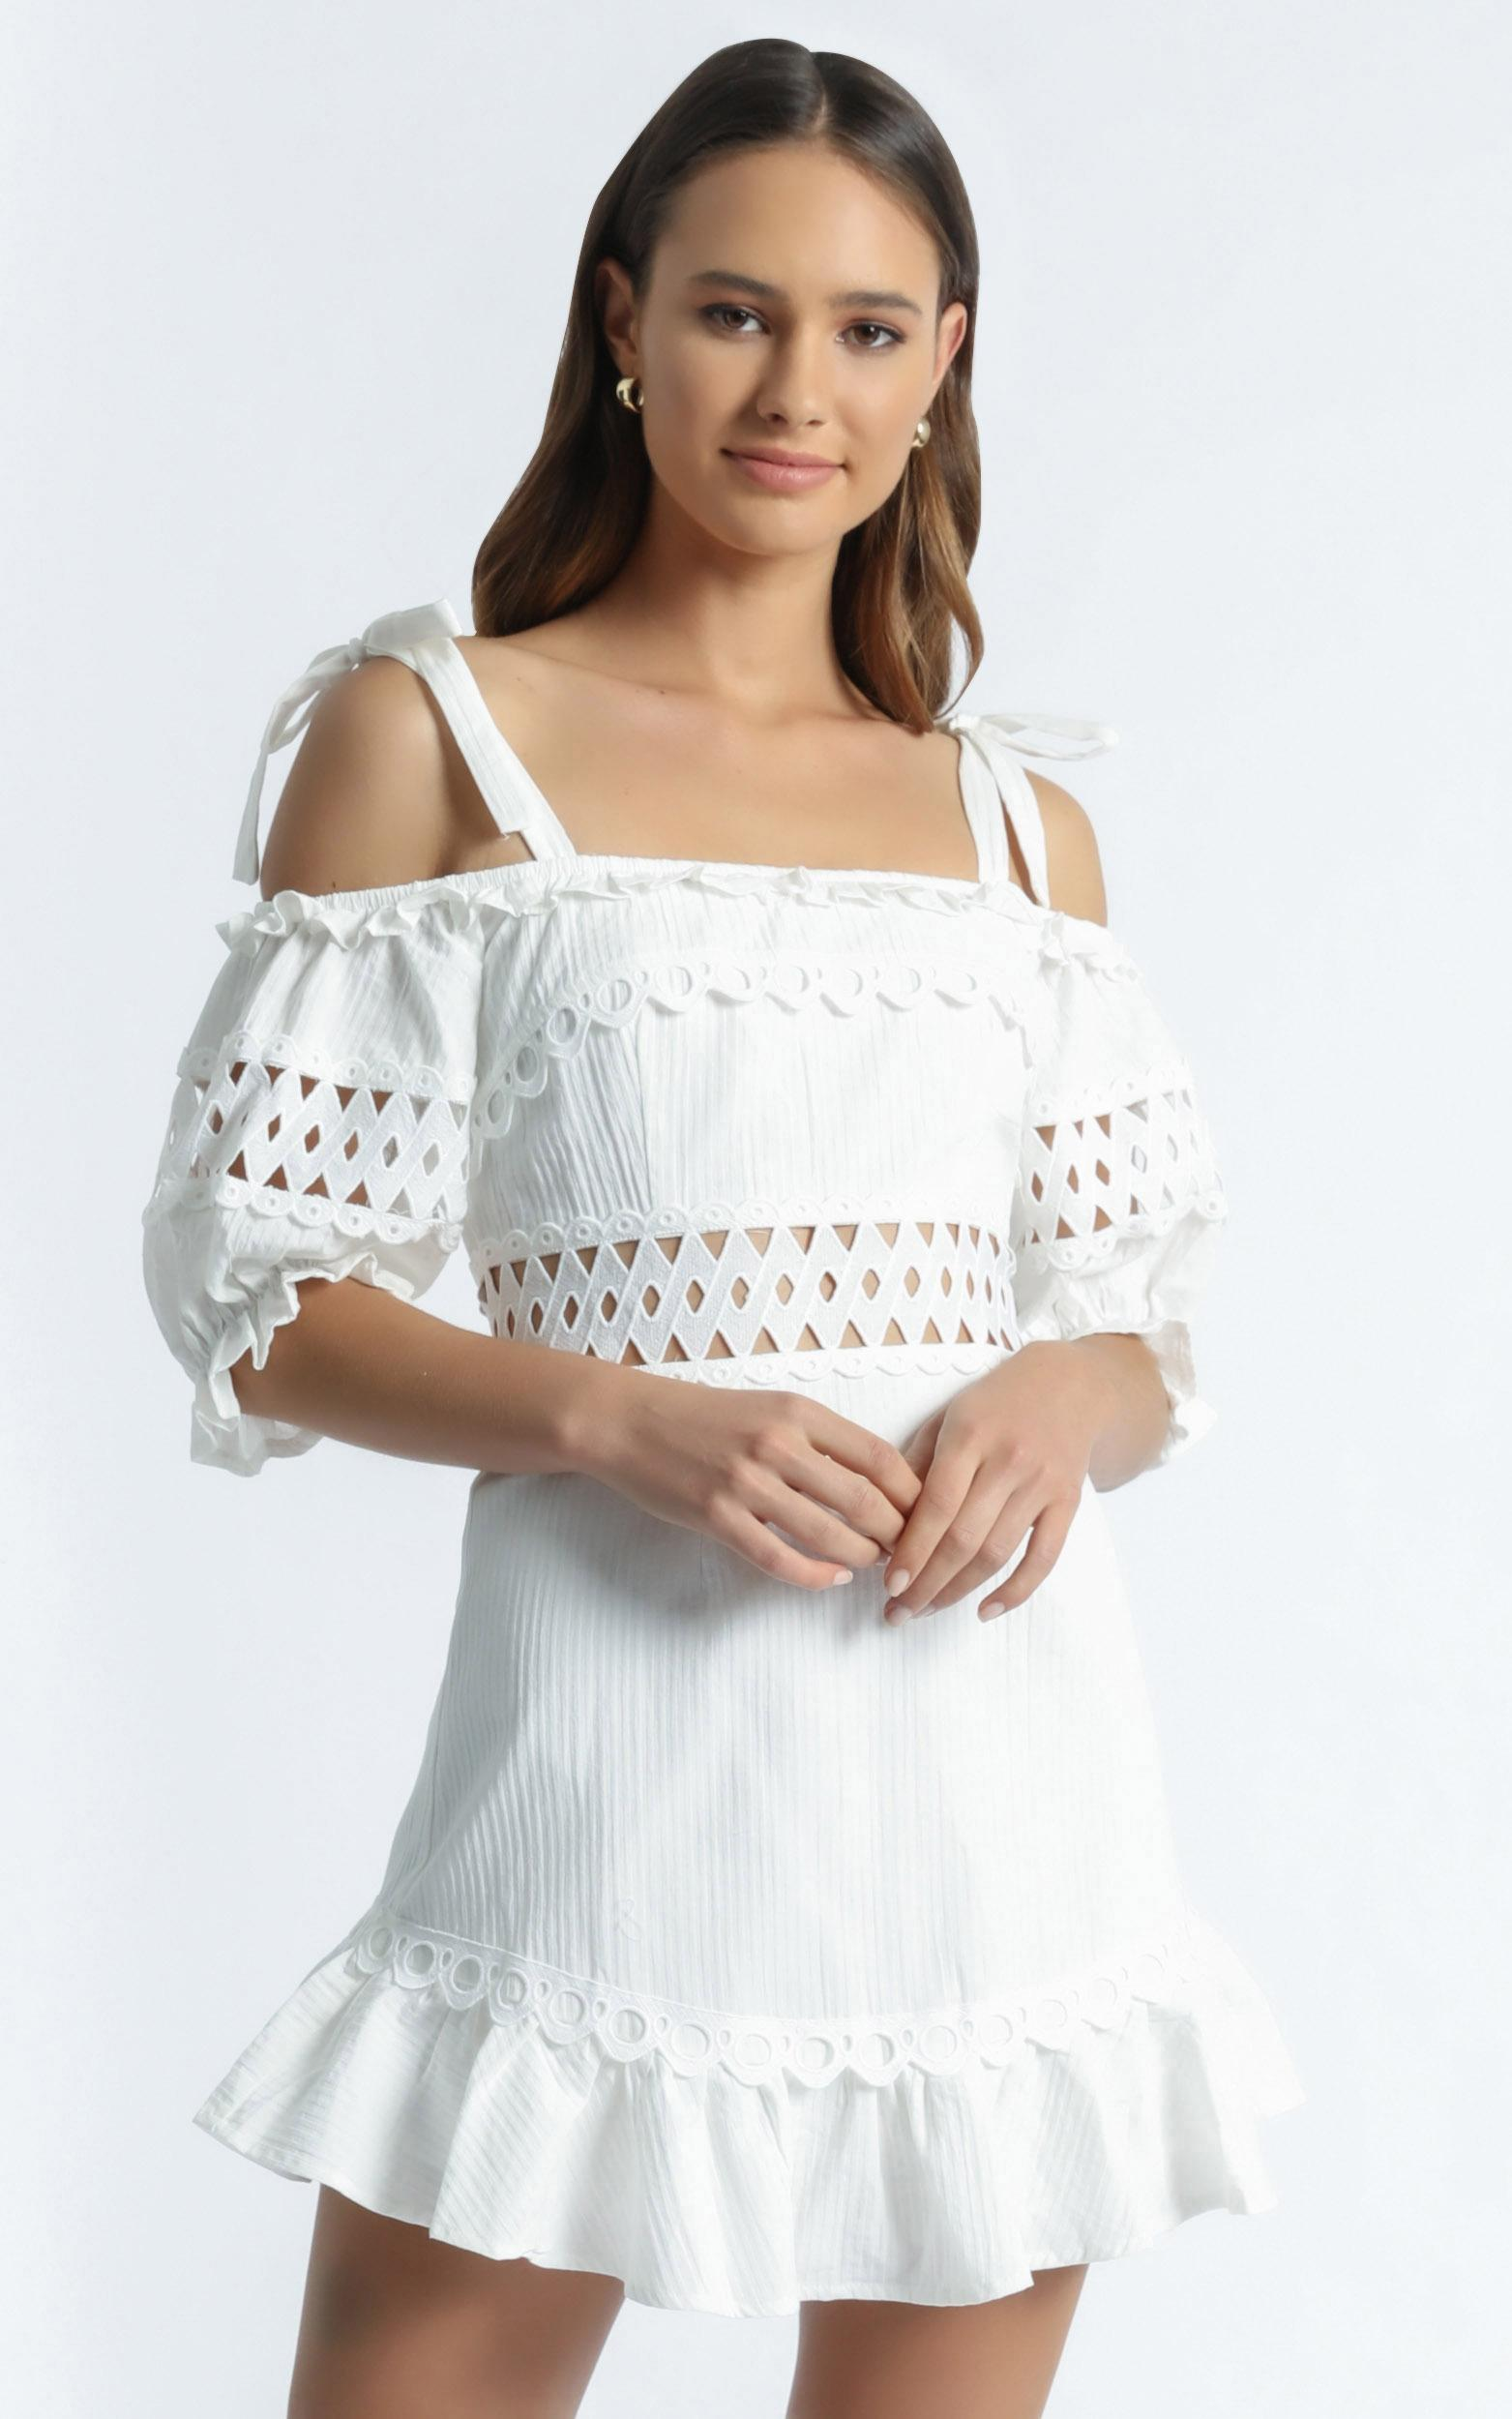 Balwyn Dress in White - 6 (XS), White, hi-res image number null